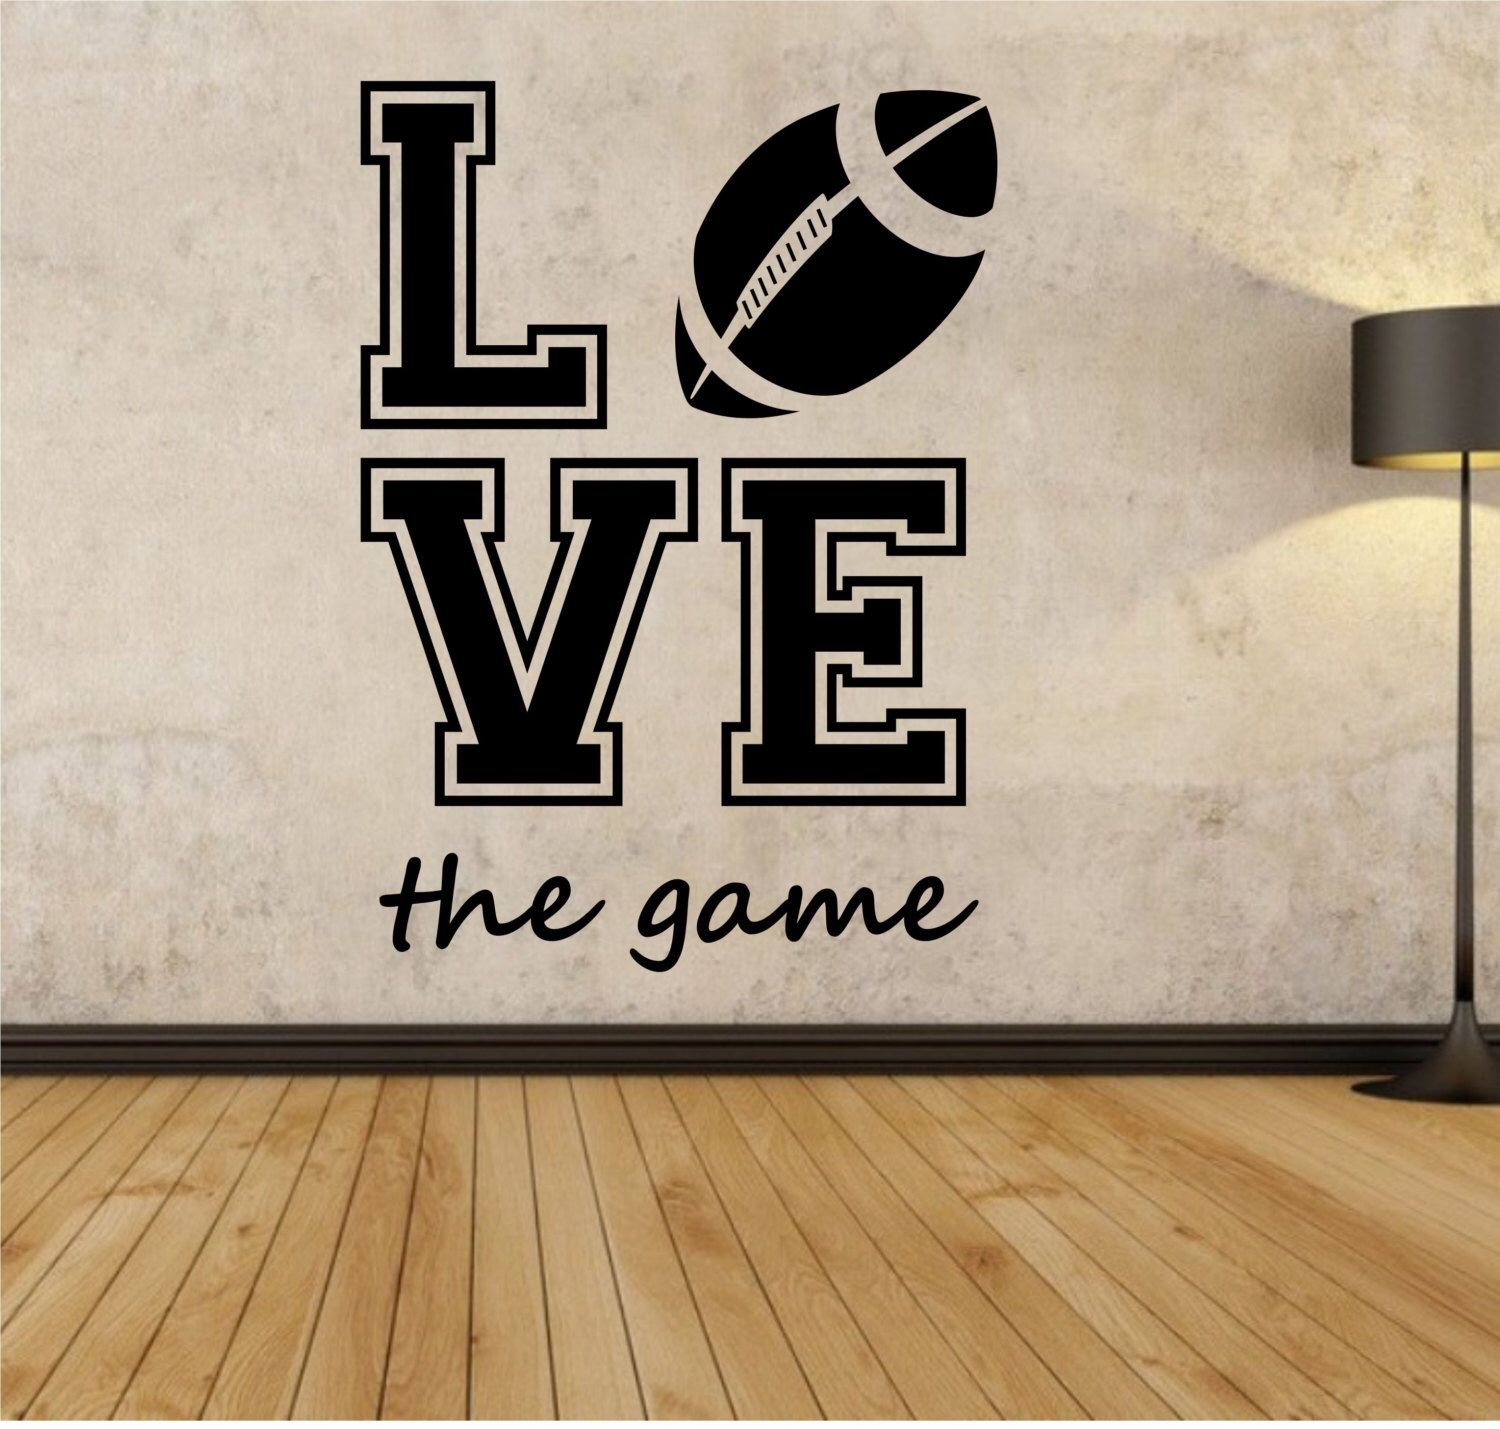 Football Wall Decal LOVE THE GAME Sticker Art Decor Bedroom Design Mural  Sports Lifestyle Work Out